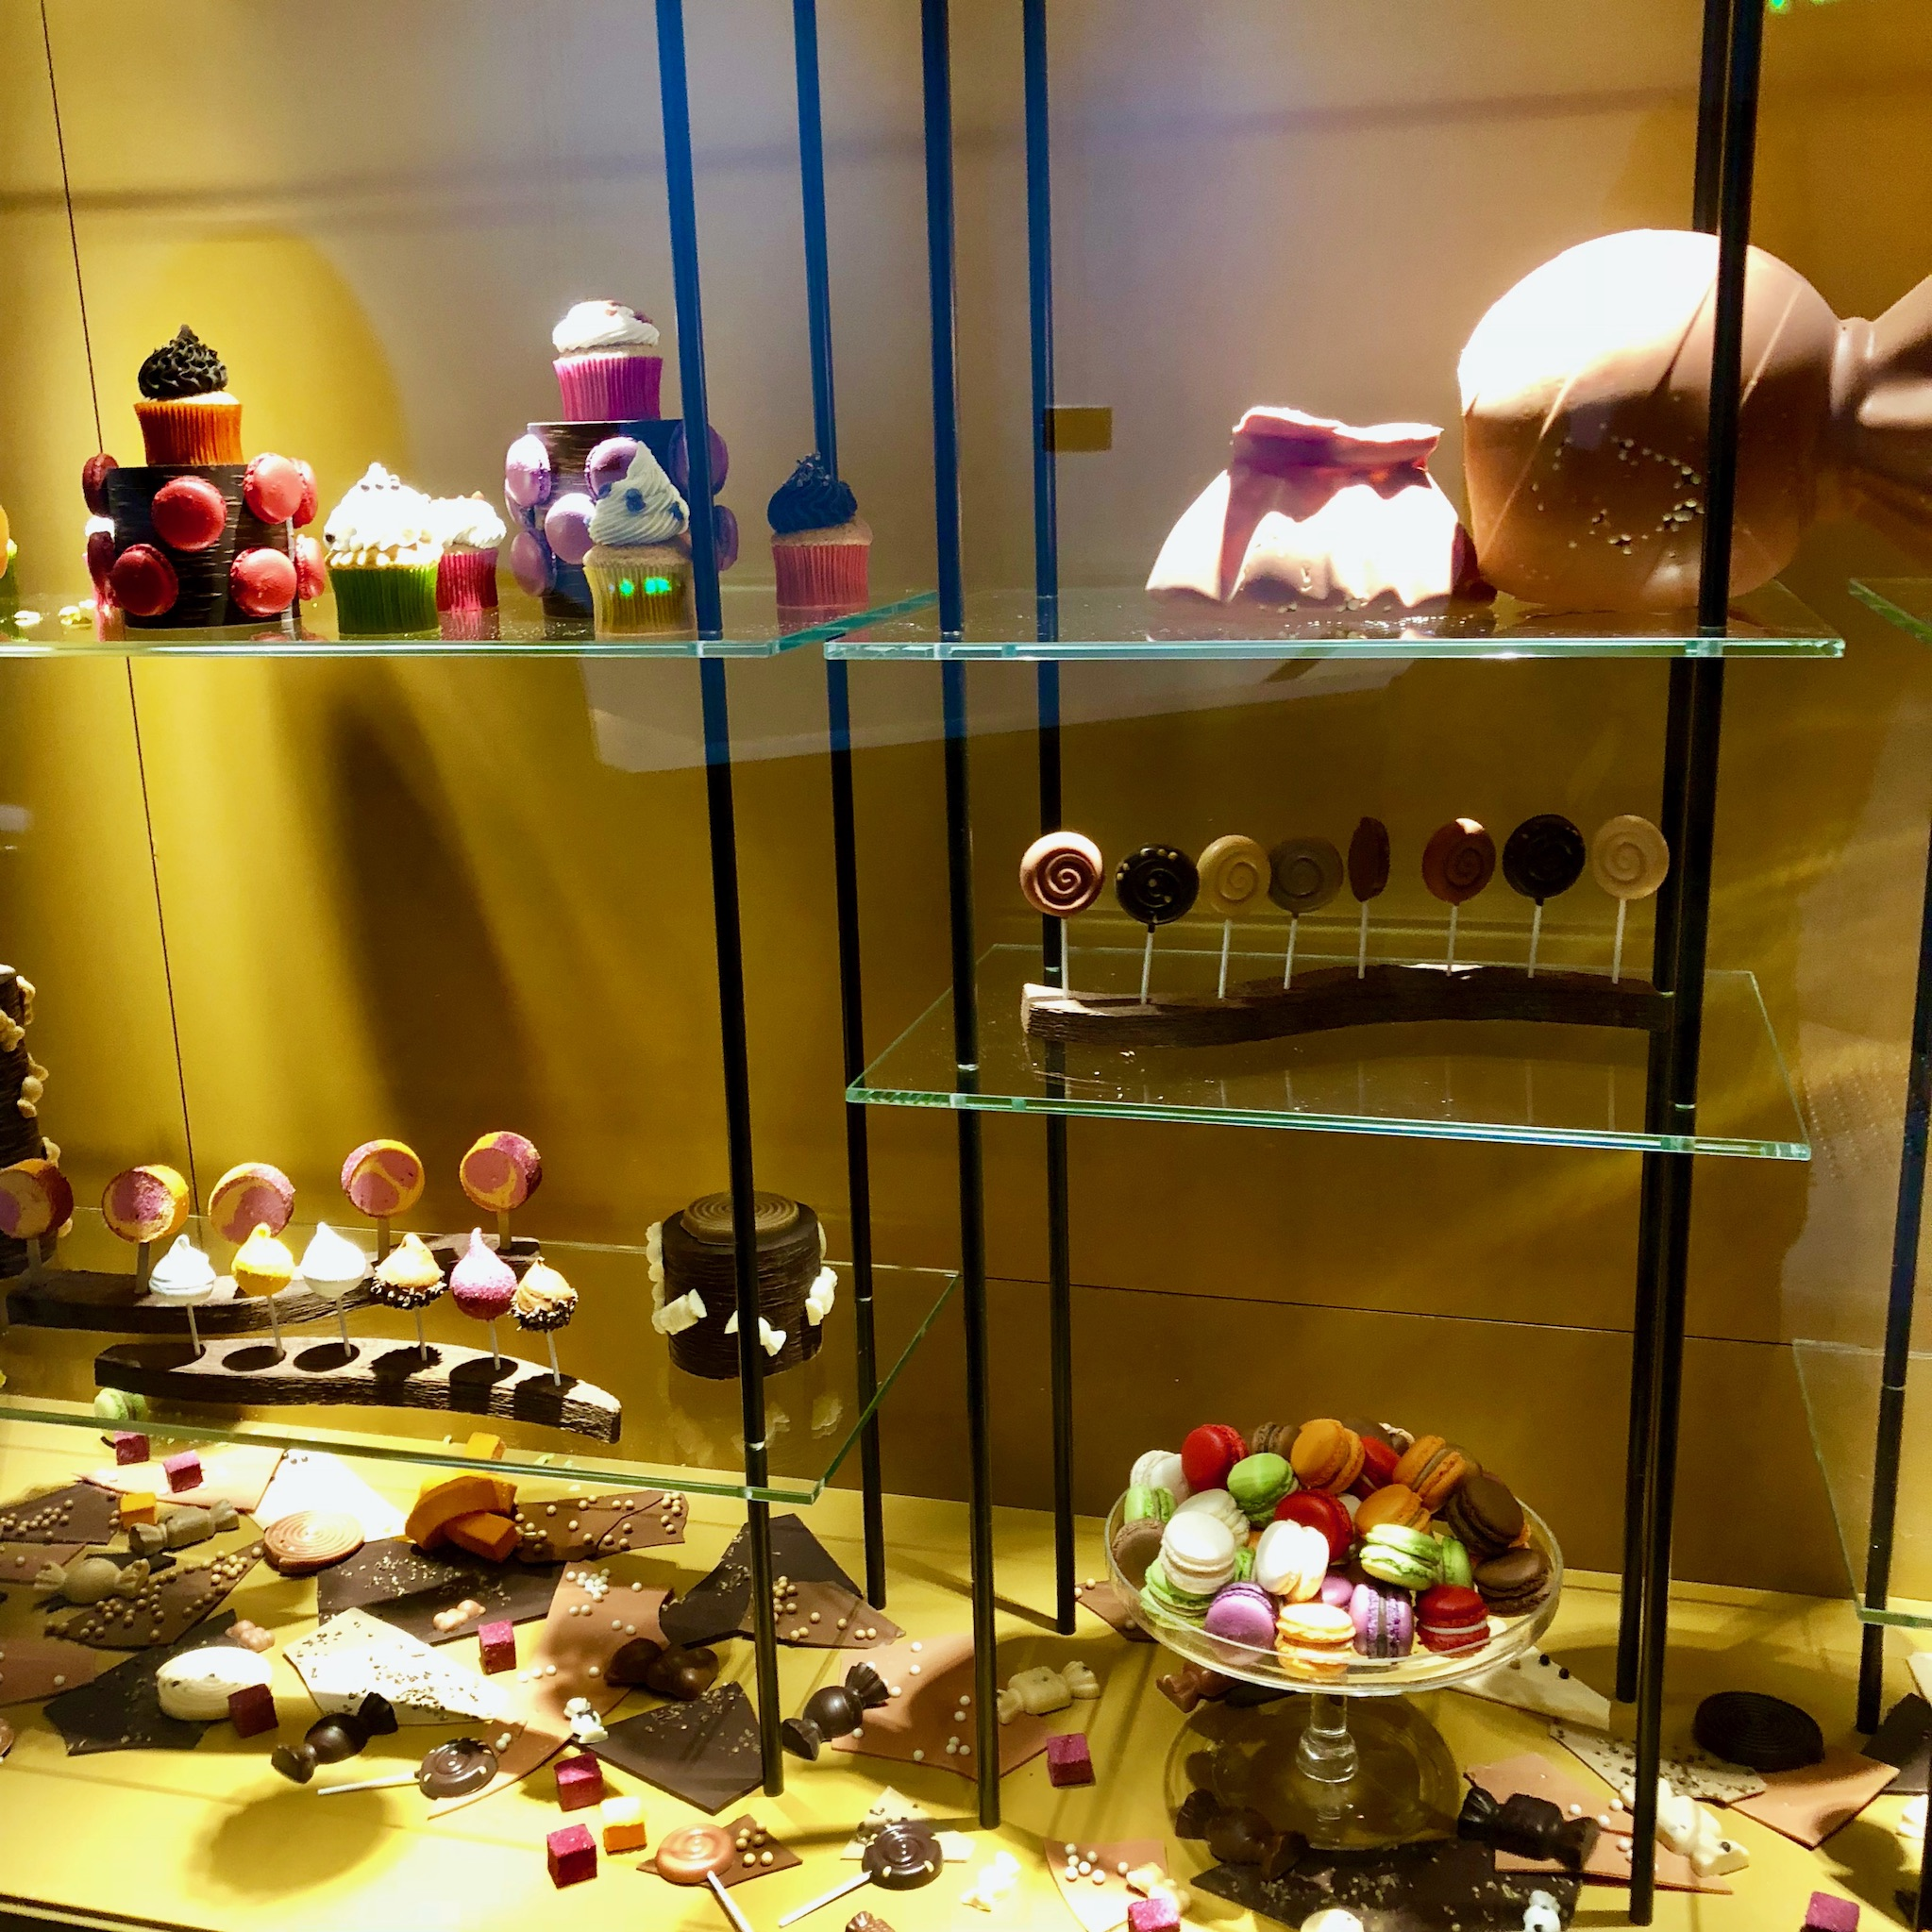 Pâtisserie display on the first floor of Cité du Chocolat